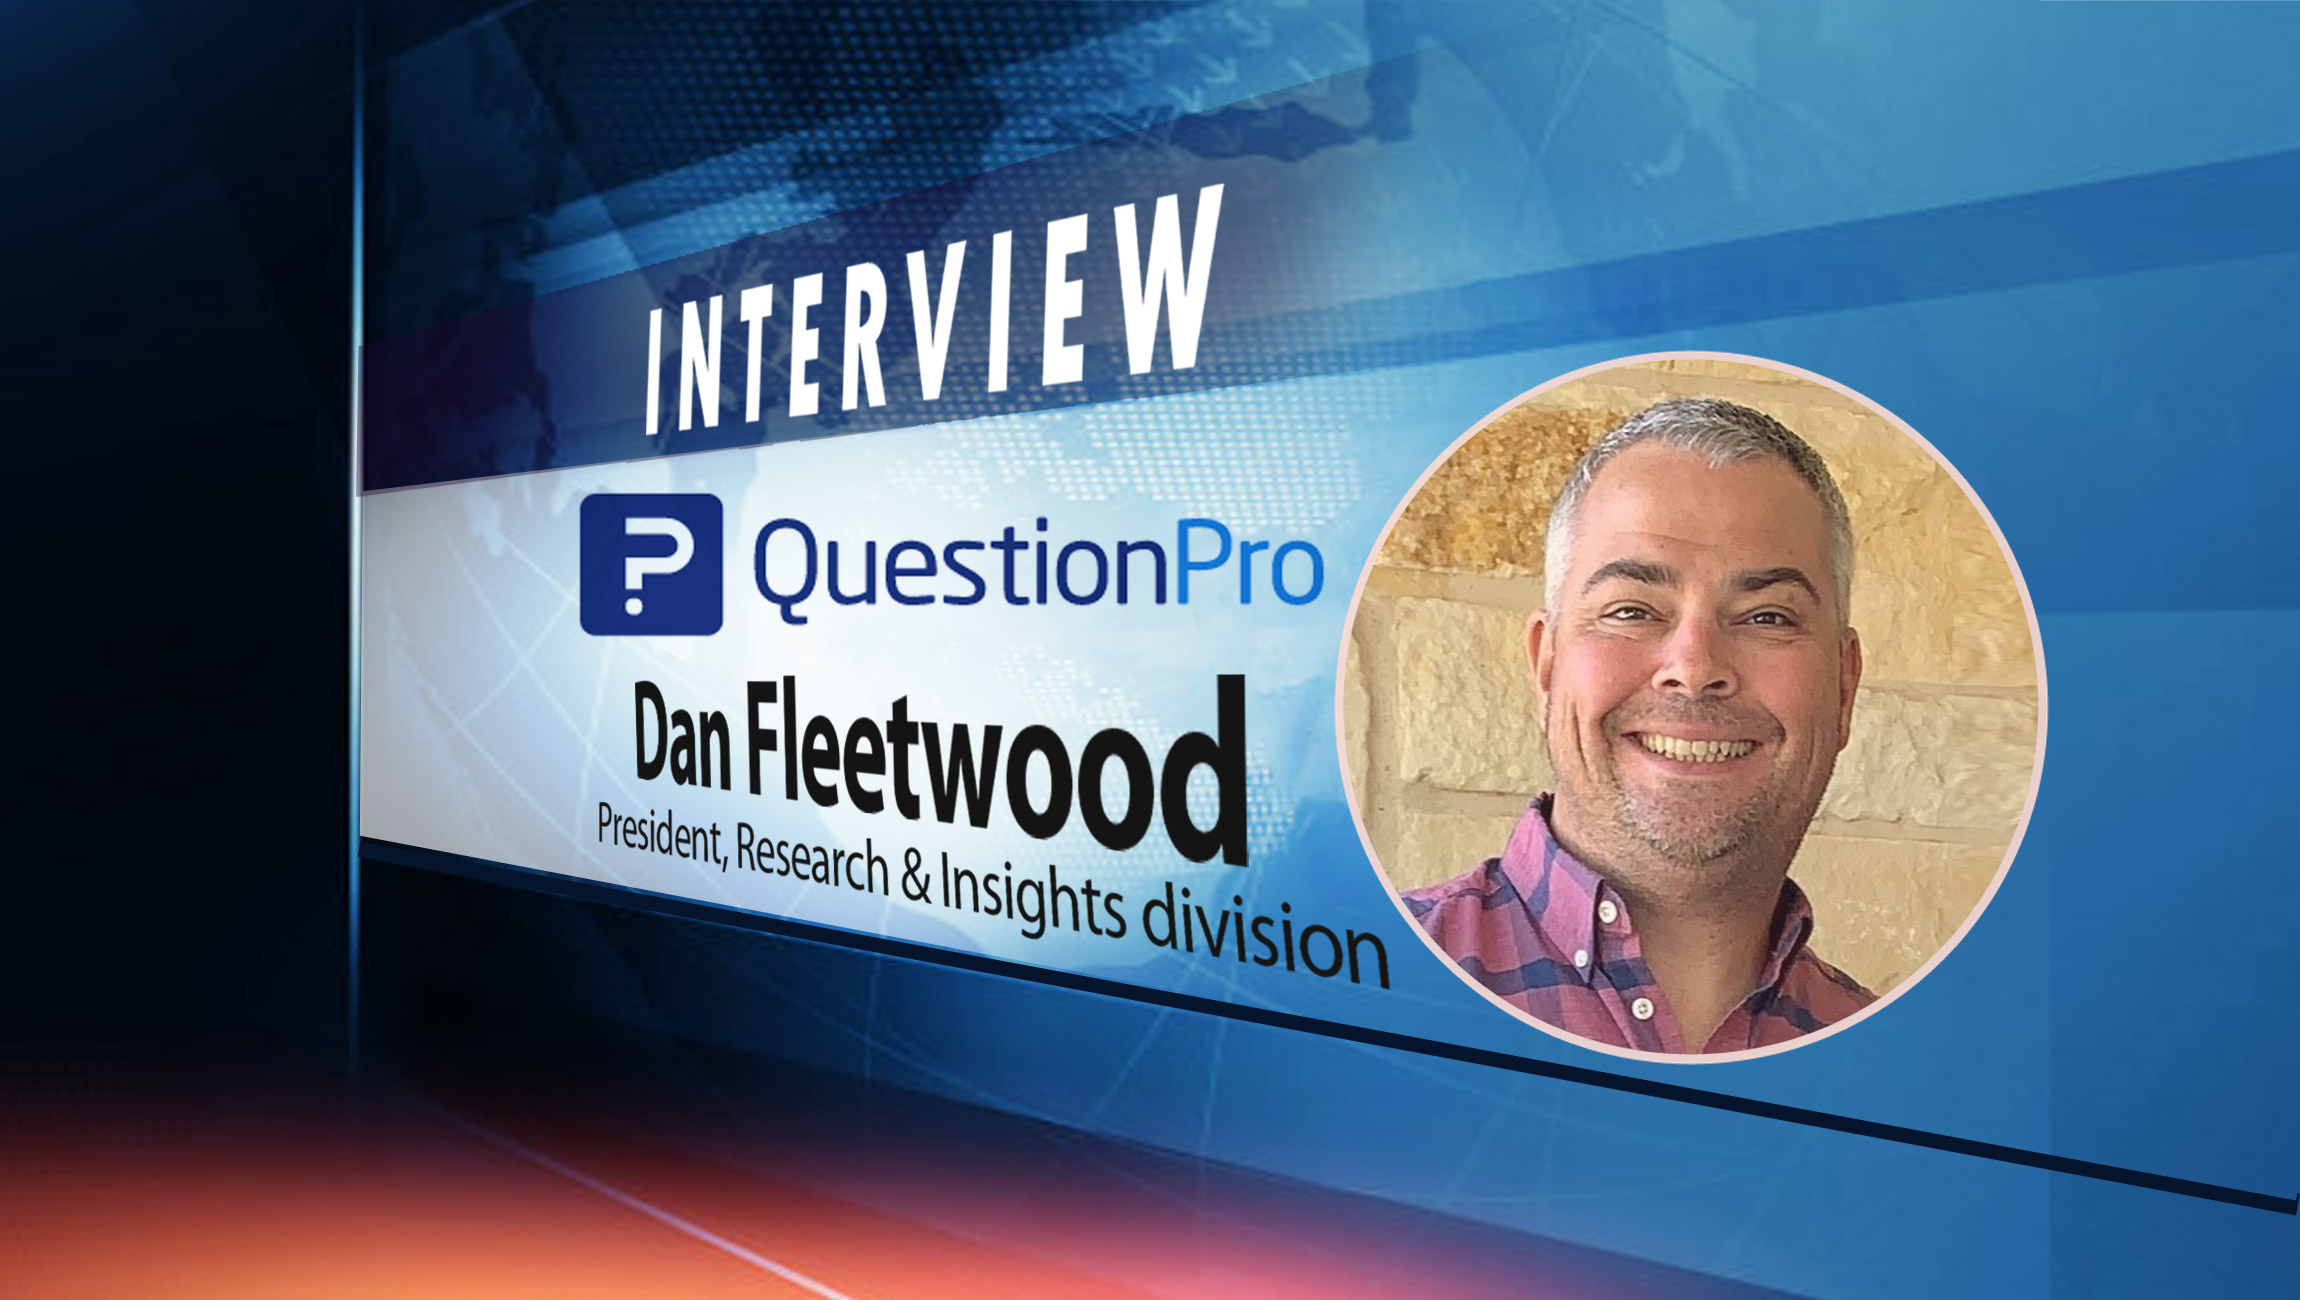 SalesTechStar Interview with Dan Fleetwood, President, Research & Insights Platform at QuestionPro